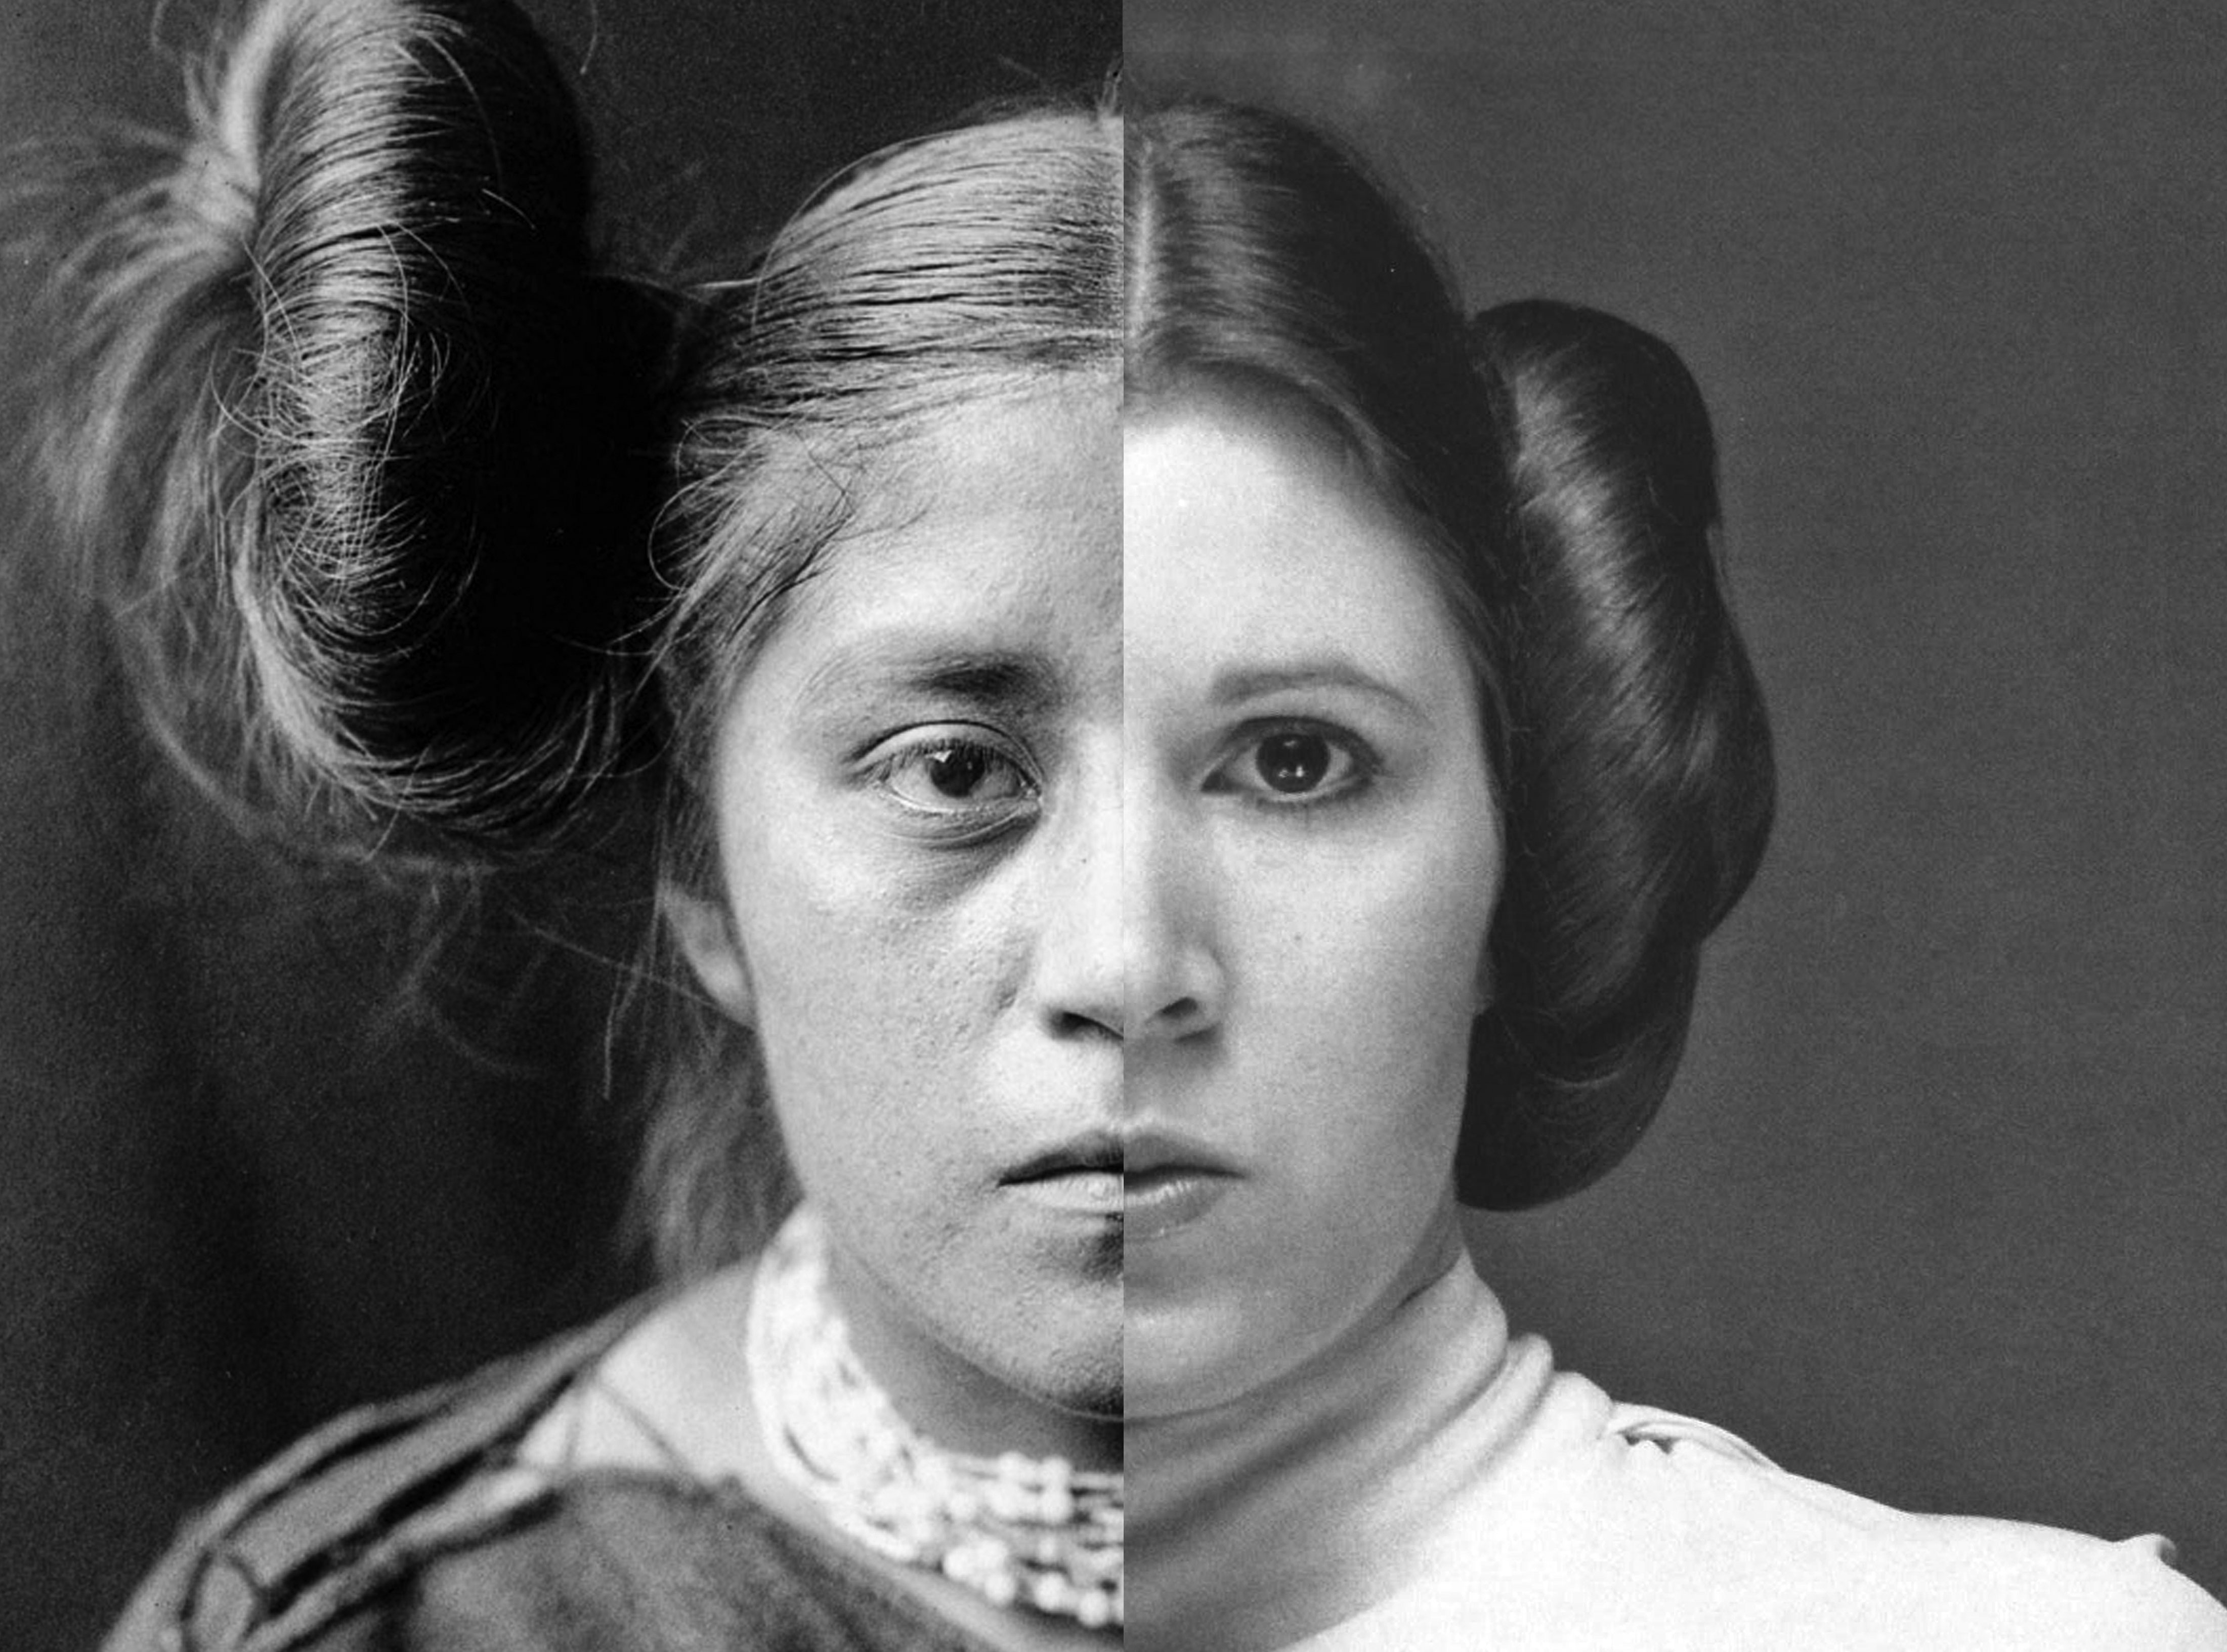 black and white portrait of two women split down the middle and connected into one